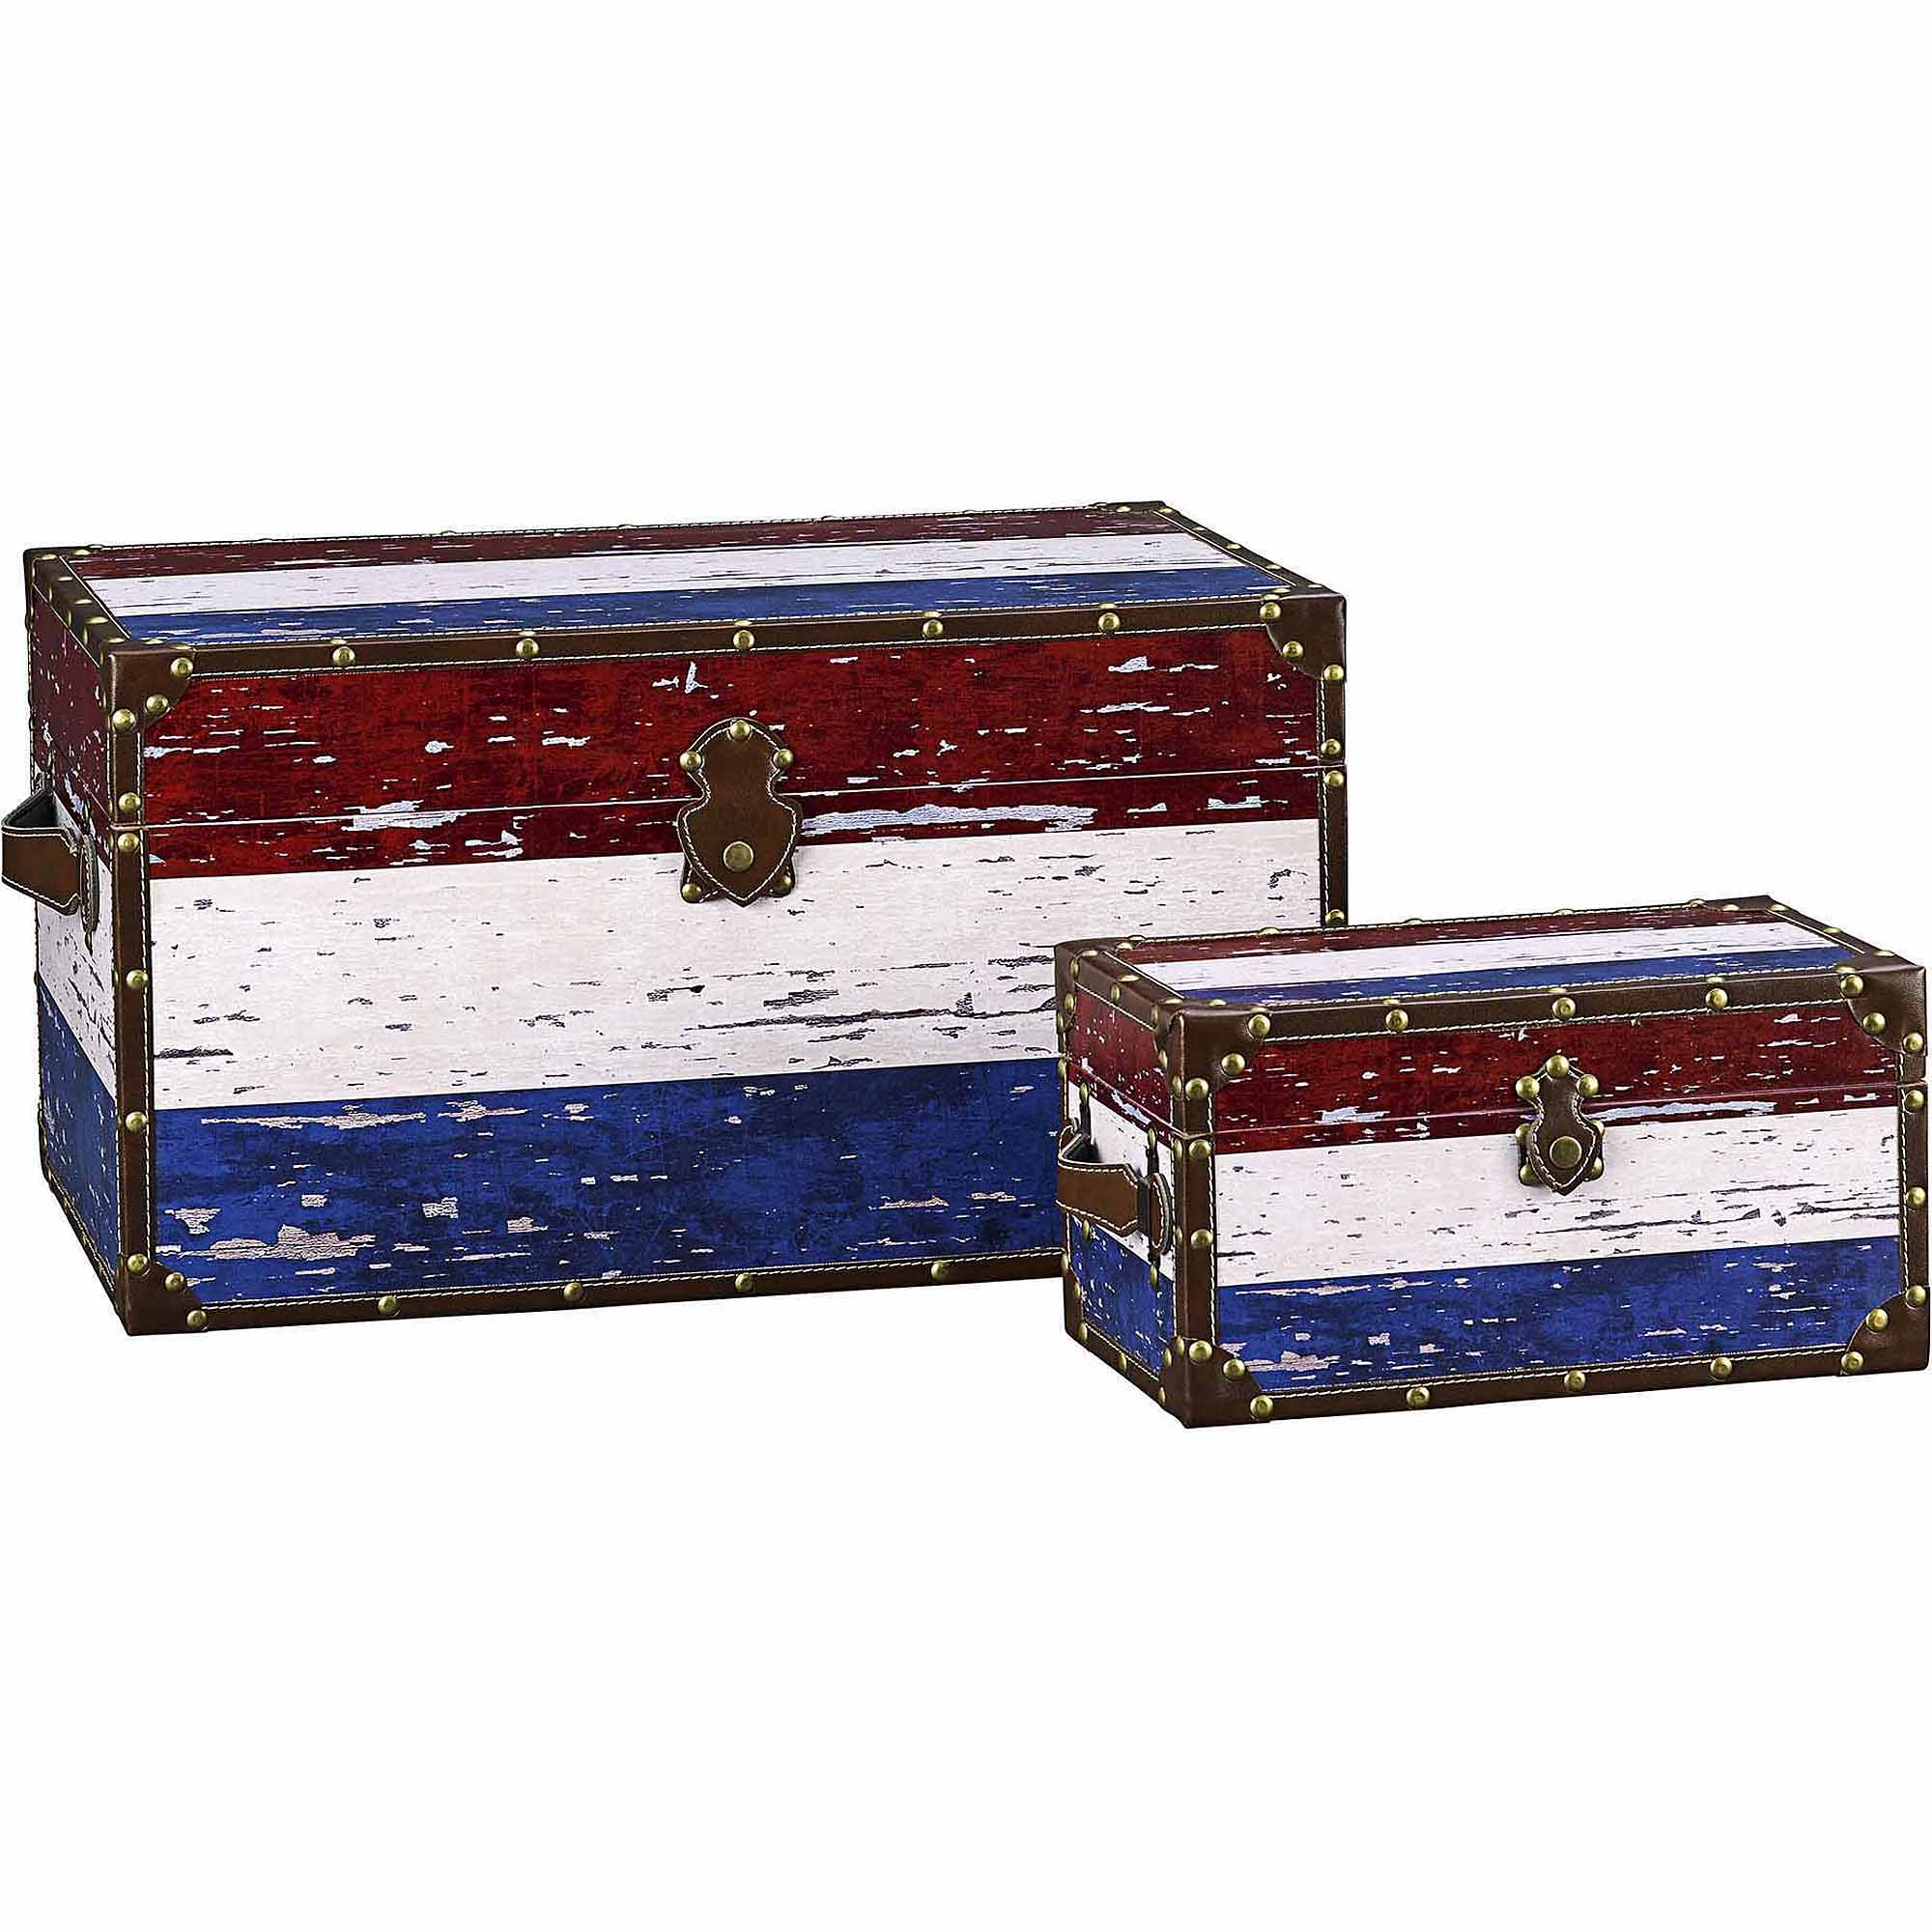 Household Essentials Decorative Storage Trunk, American Flag Design, Set of 2